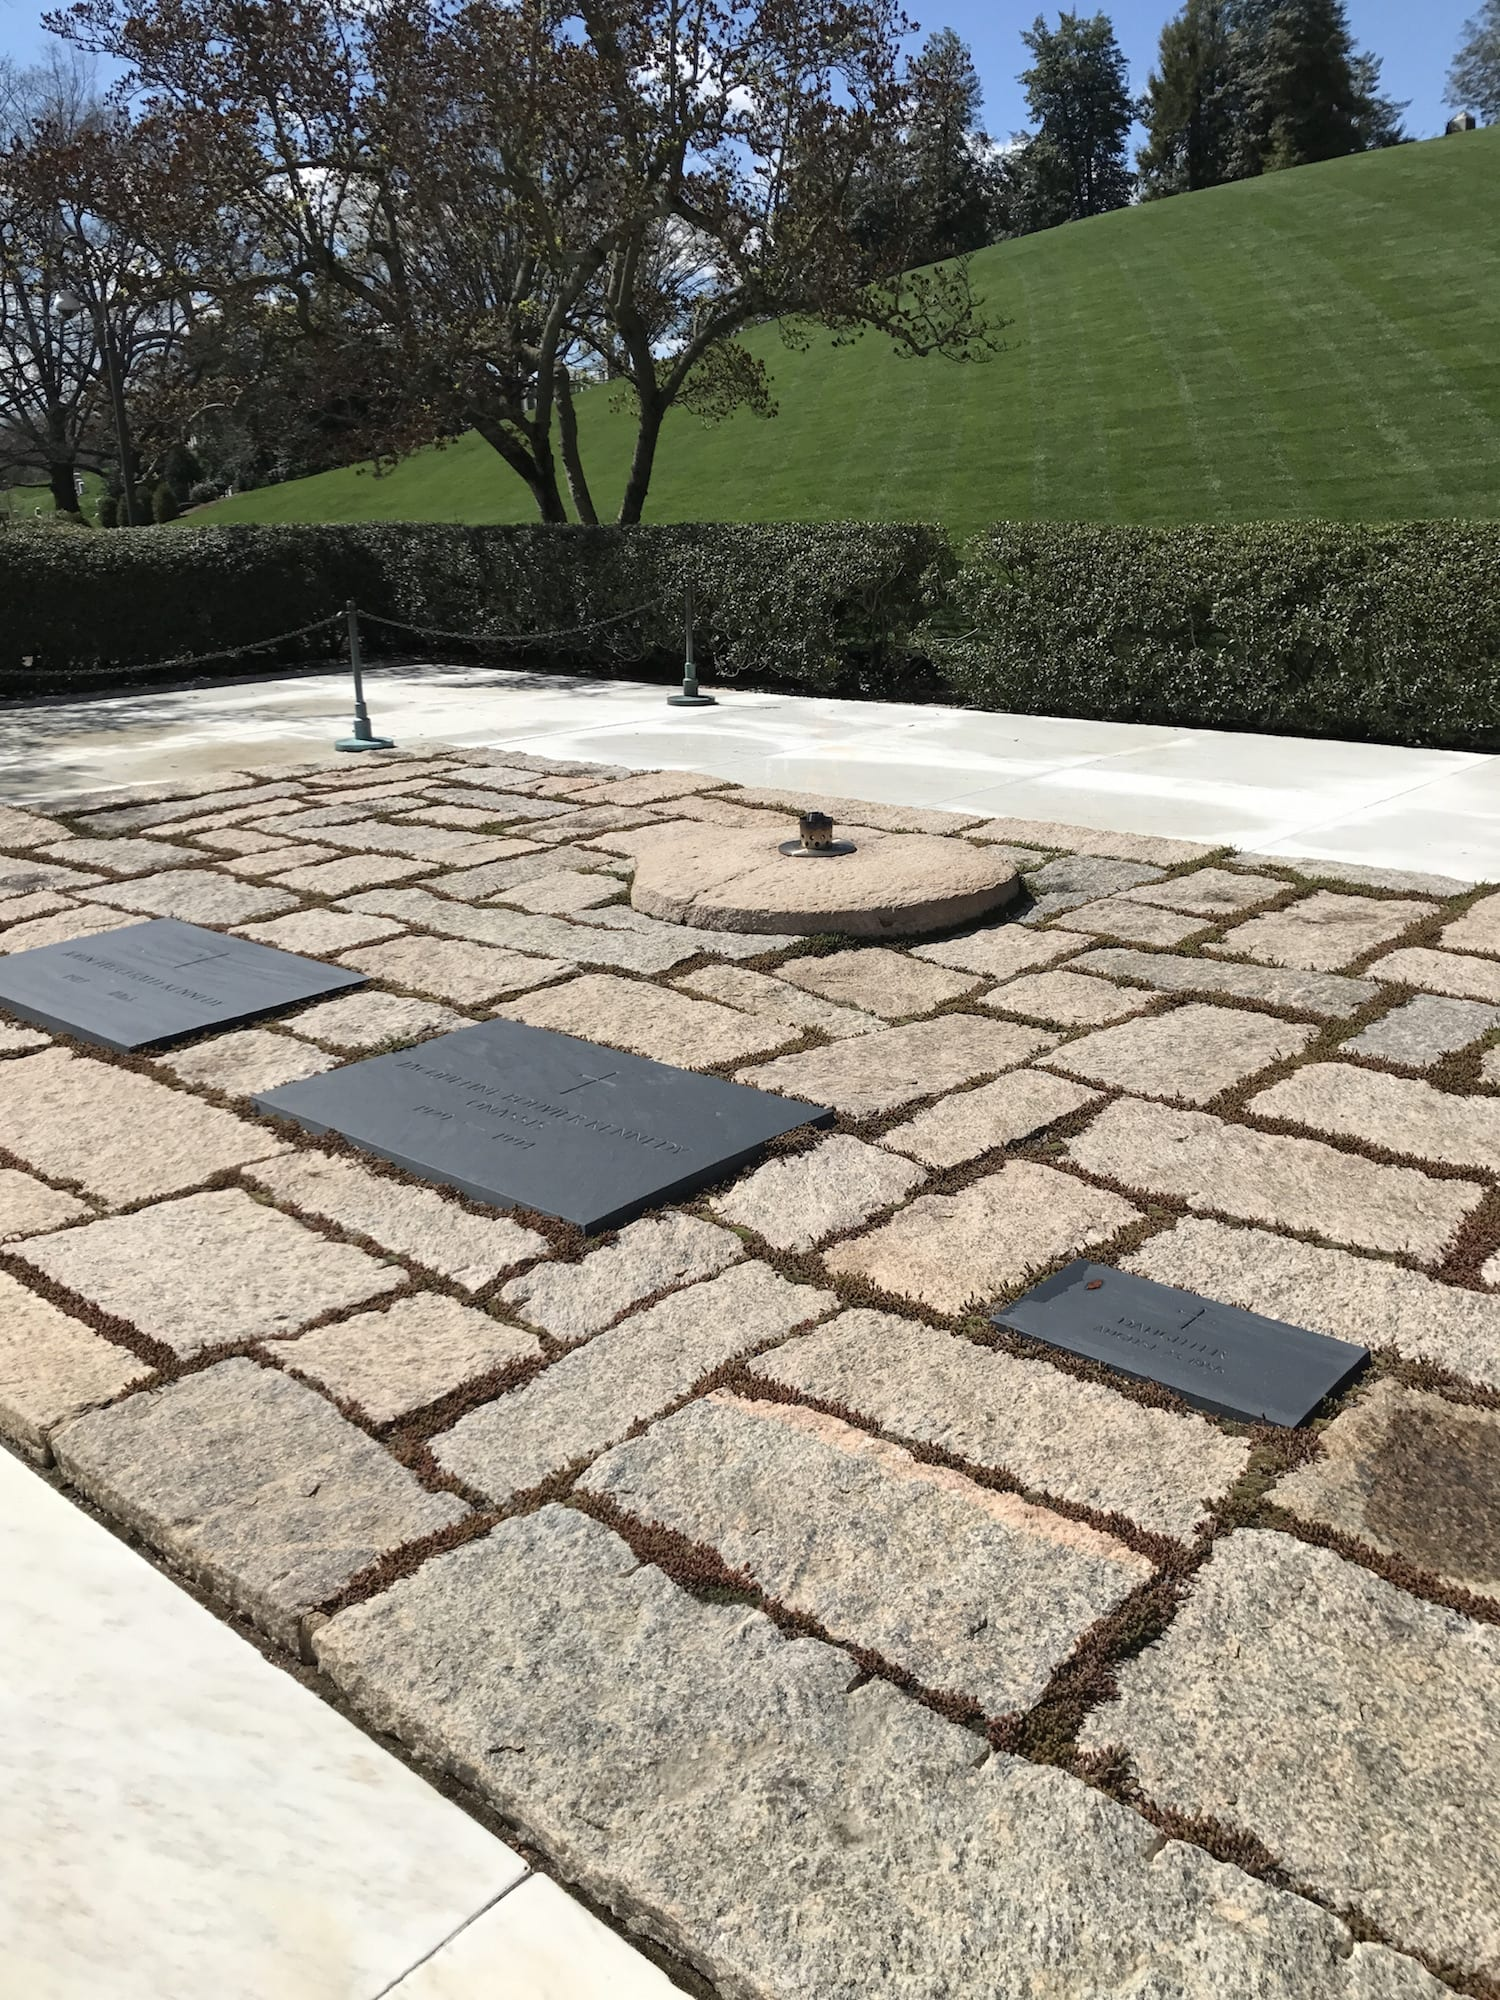 President John F Kennedy's Grave and Eternal Flame - Arlington Cemetery